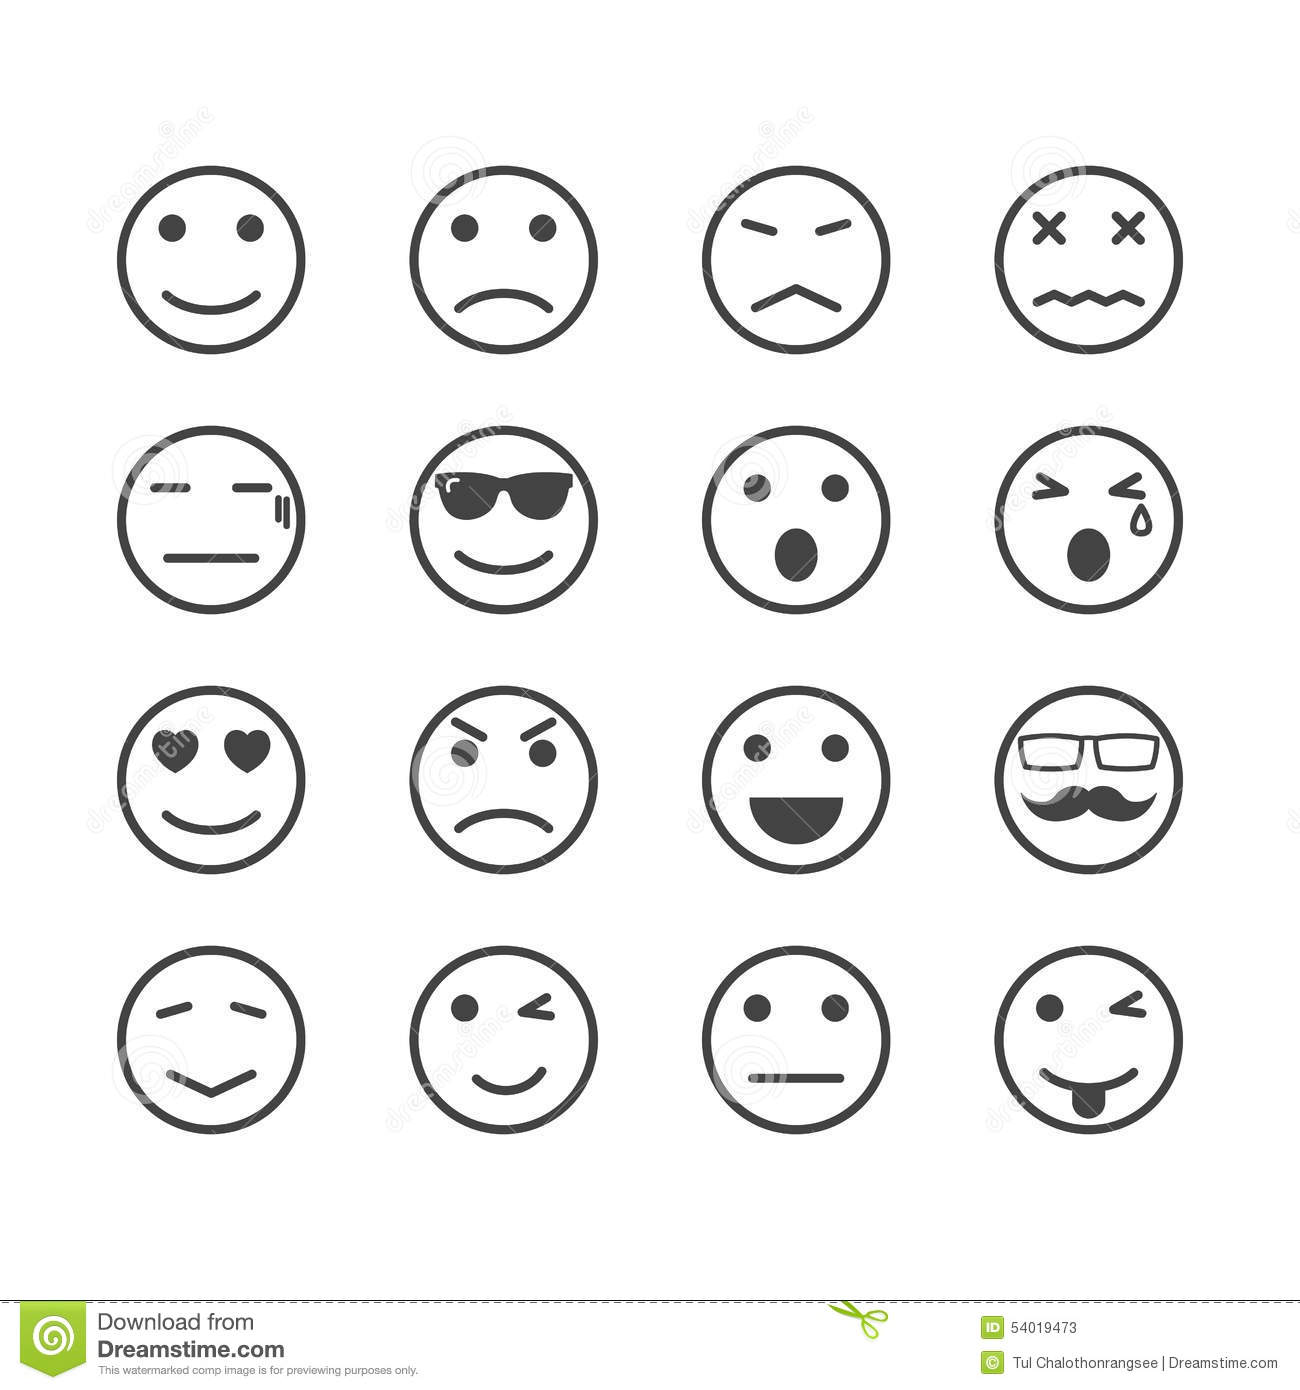 Free Worksheets emotion worksheets : Human emotion icons stock vector. Illustration of angry ...